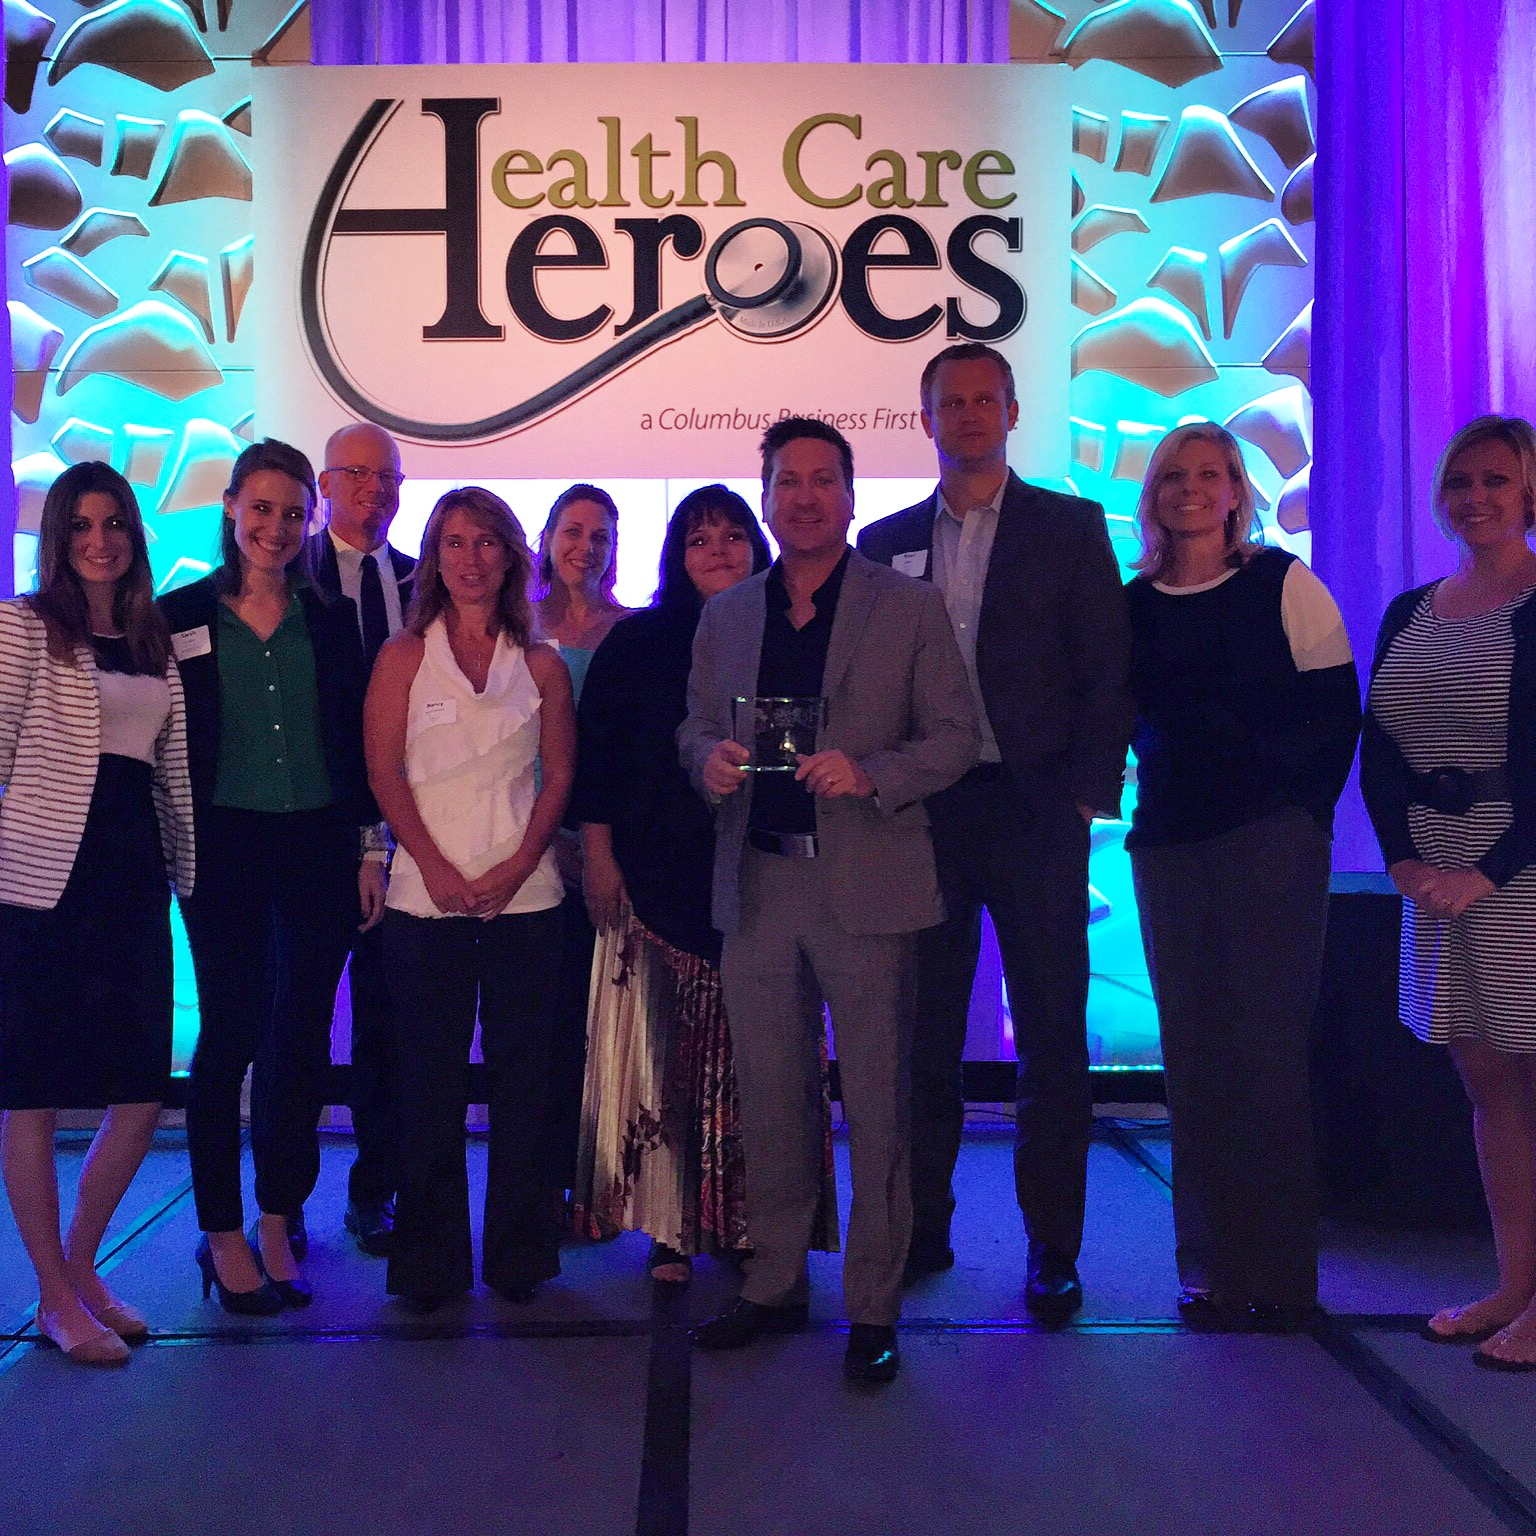 HealthCareHeroes_07092015